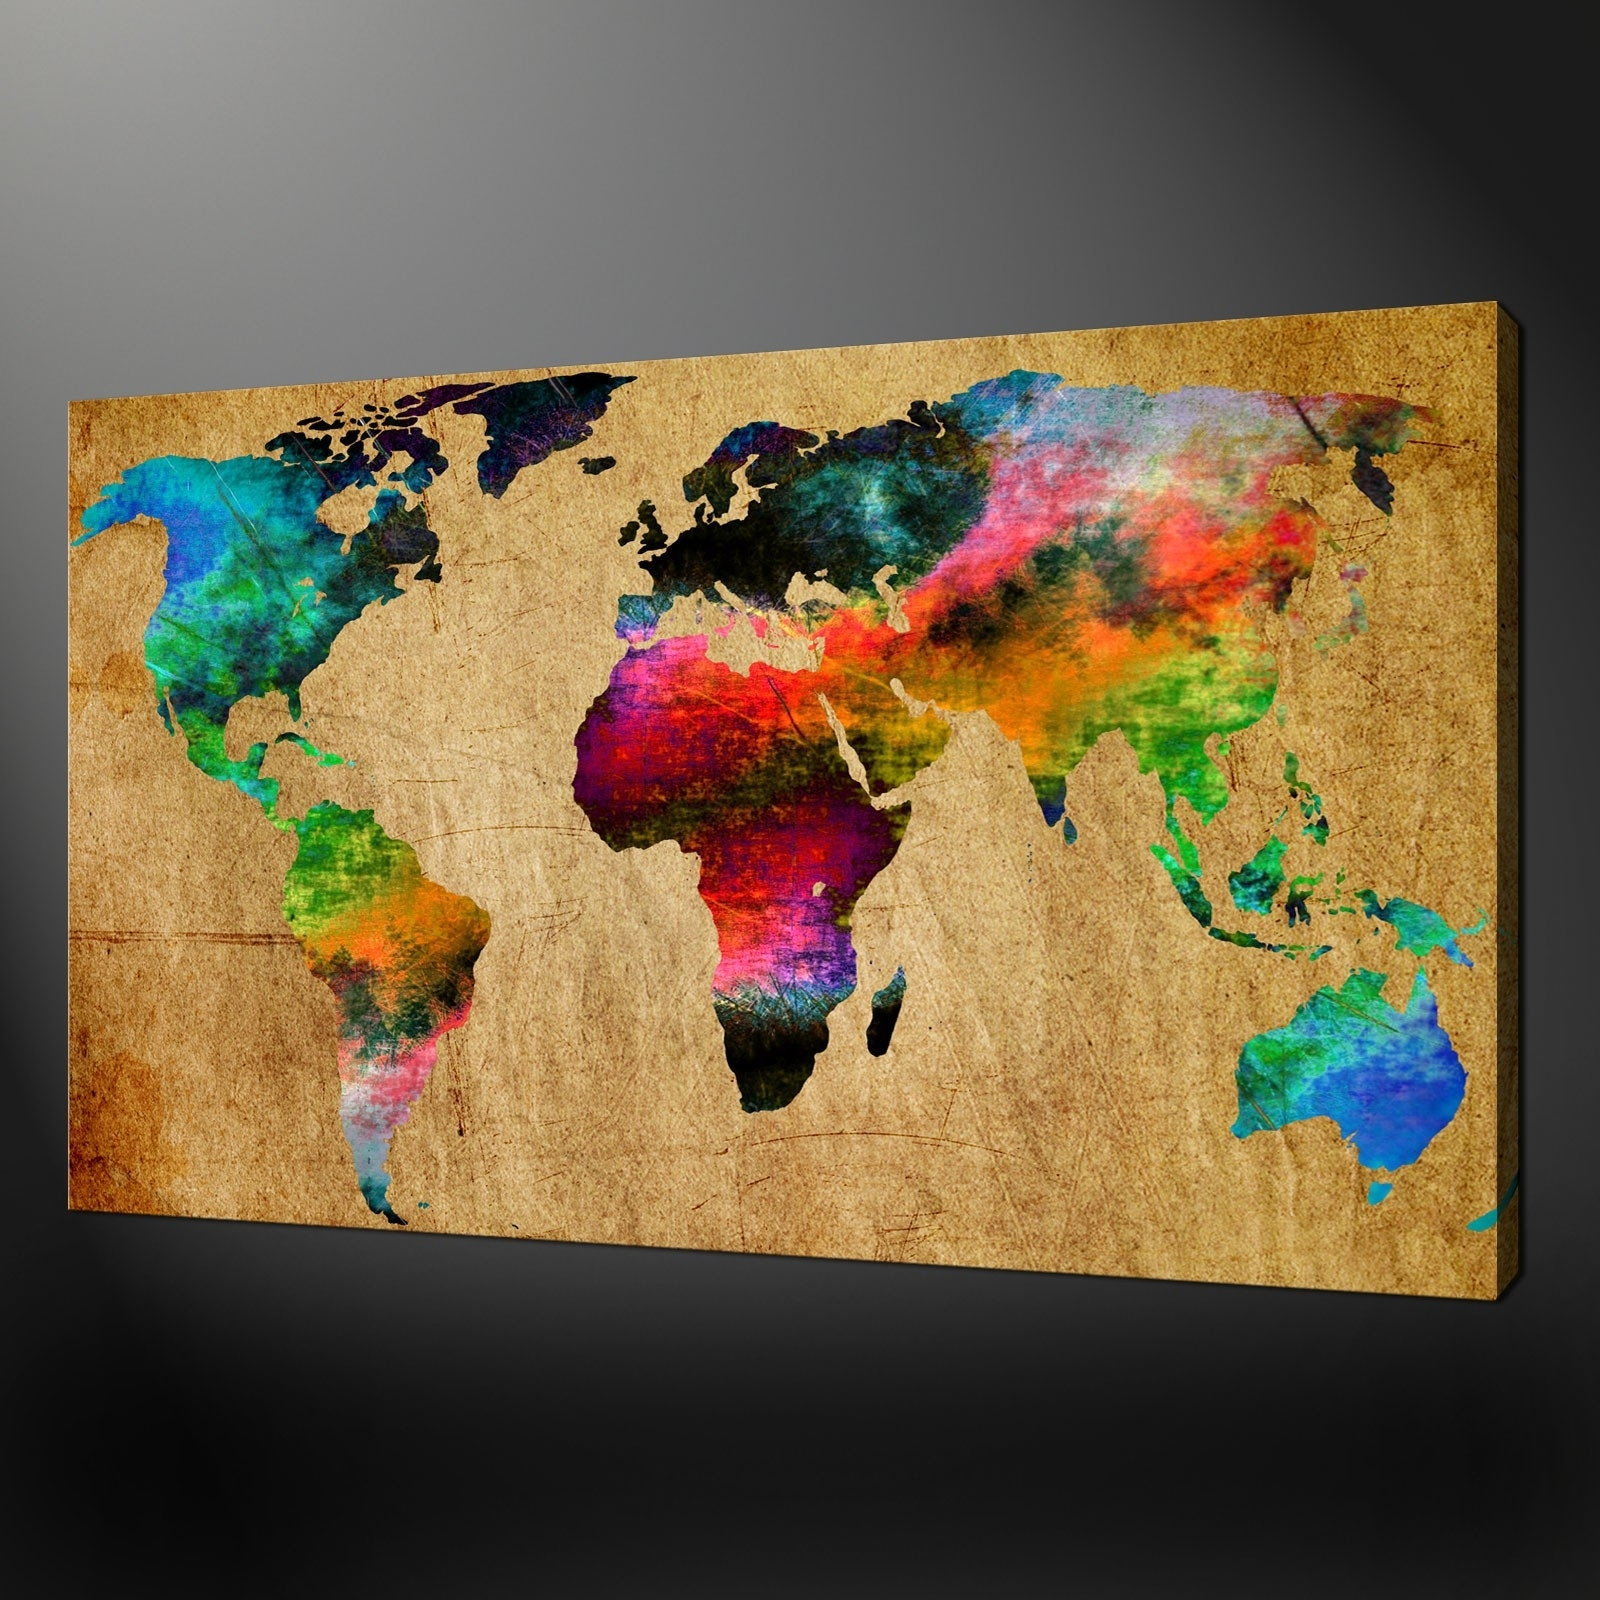 Modern World Map Canvas New World Map Canvas Wall Art Picture With Newest Maps Canvas Wall Art (View 9 of 15)